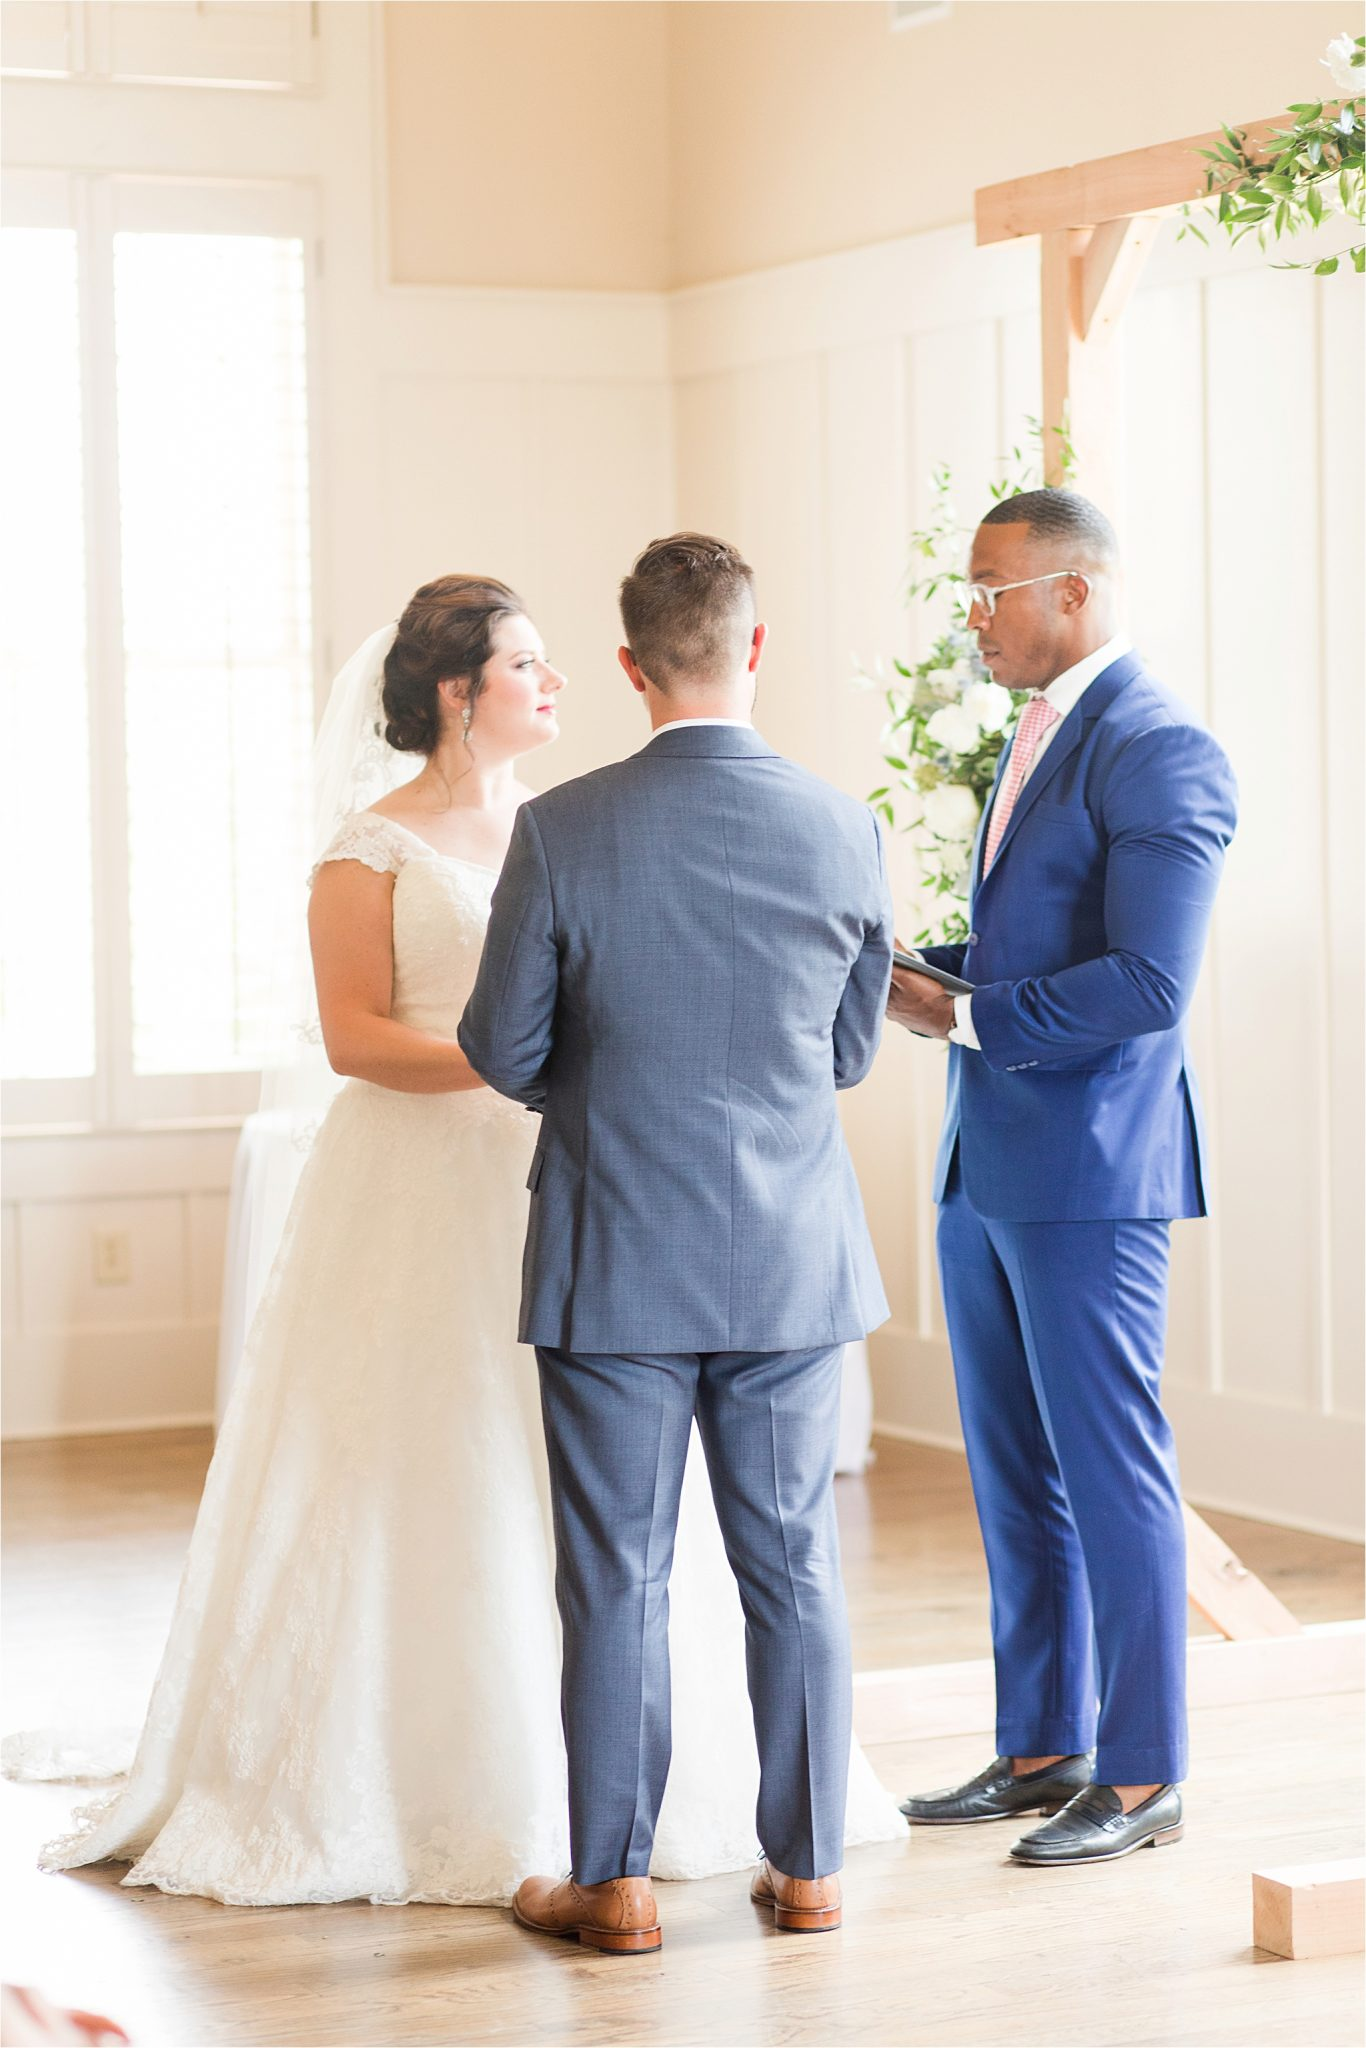 Pastel Themed Wedding-The Chapel at the Waters-Montgomery Alabama Photographer-Miles & Meredyth-Blue Themed Wedding-Alabama Wedding Venue-Wedding Details